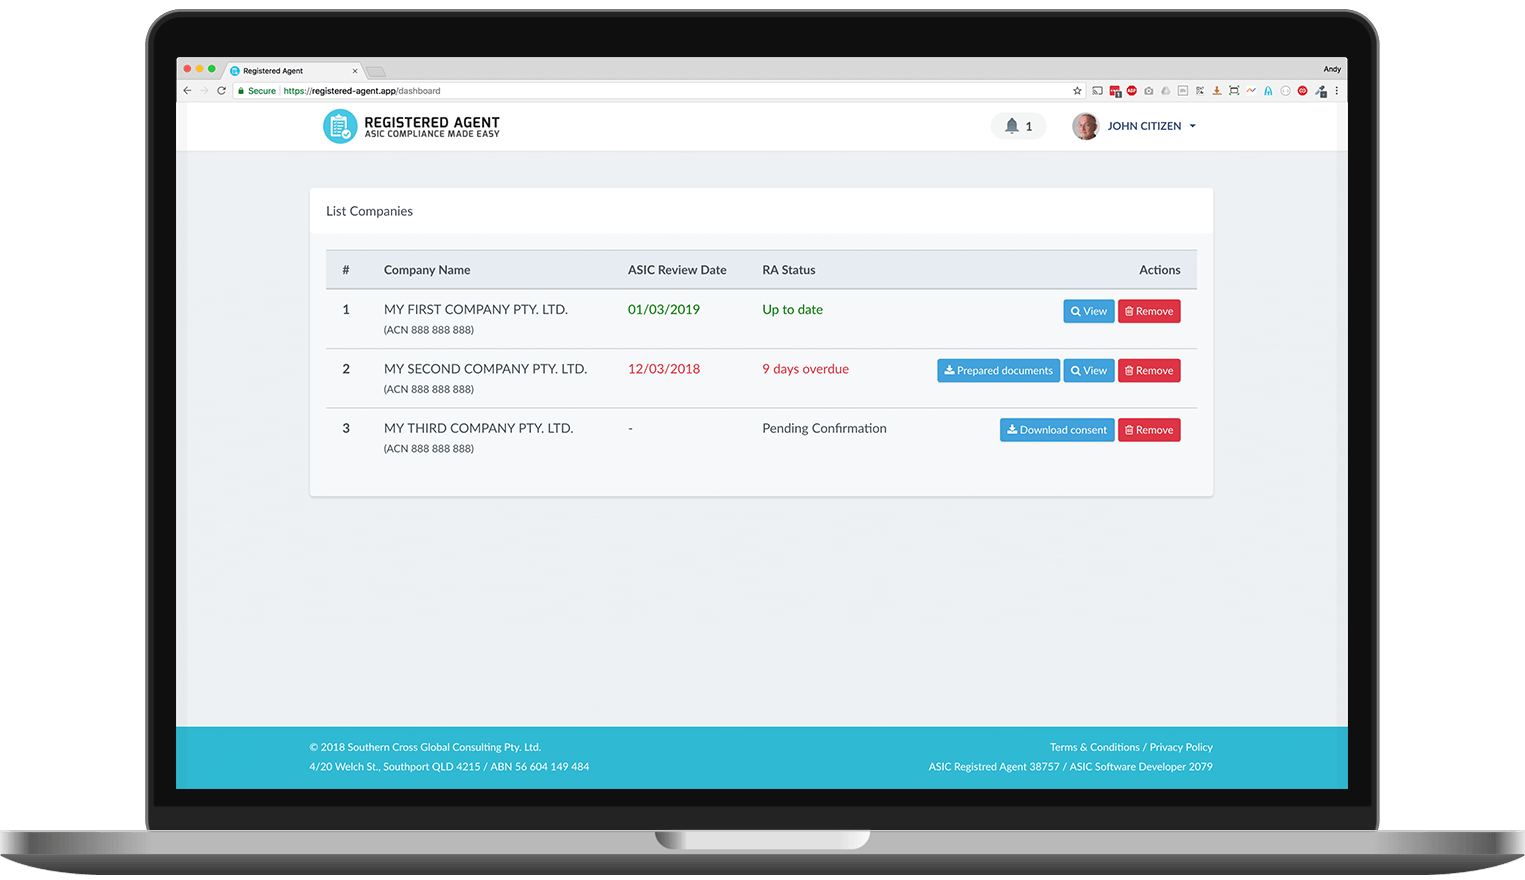 ASIC Registered Agent Dashboard